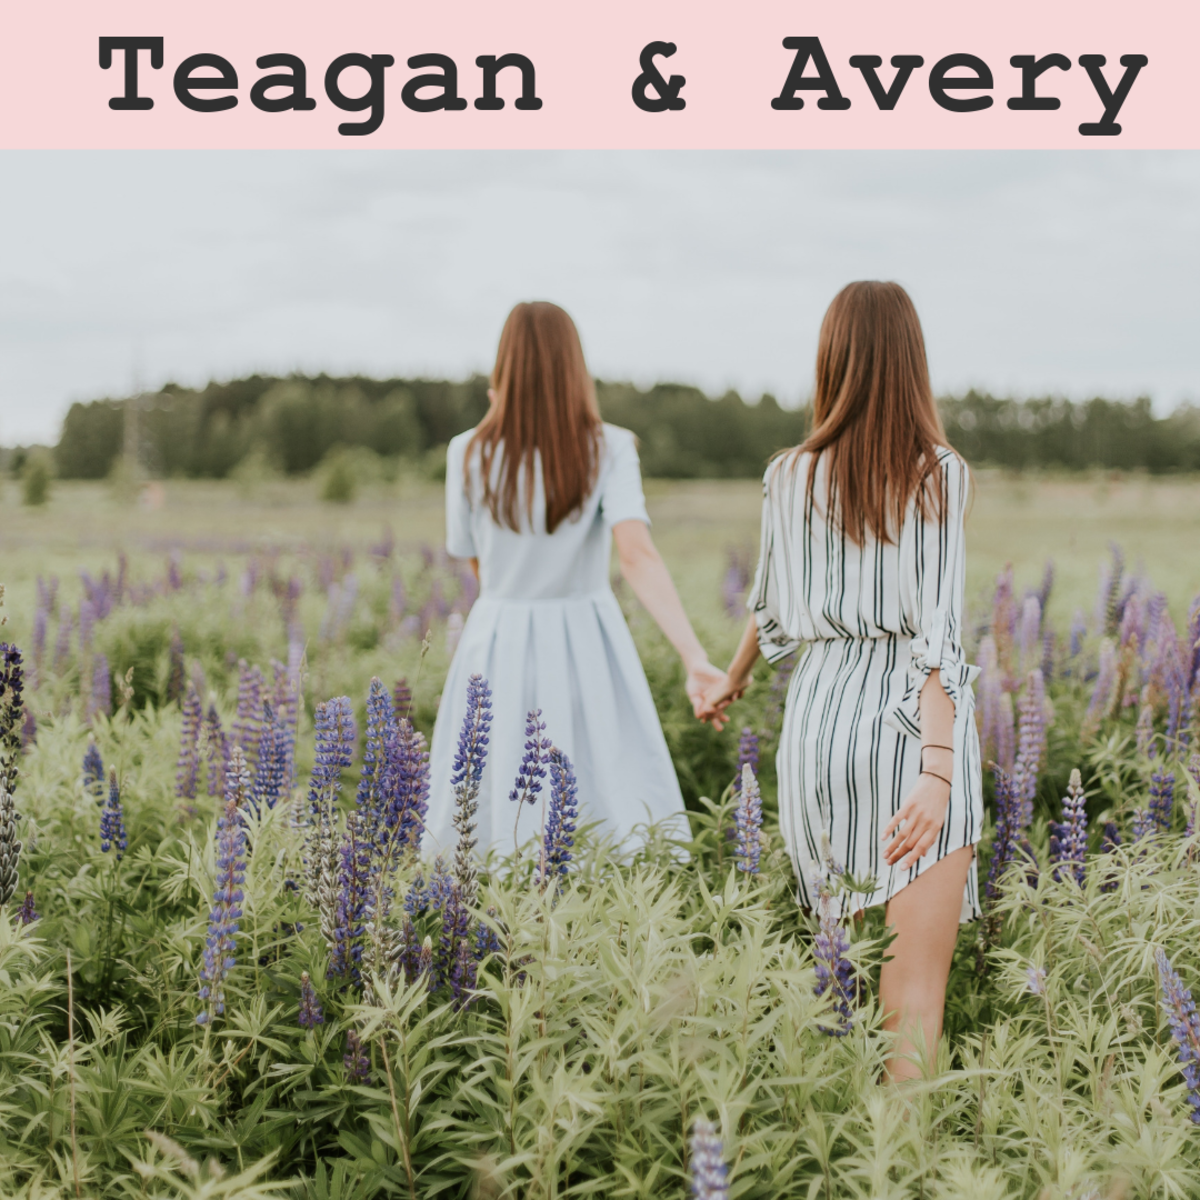 Teagan and Avery